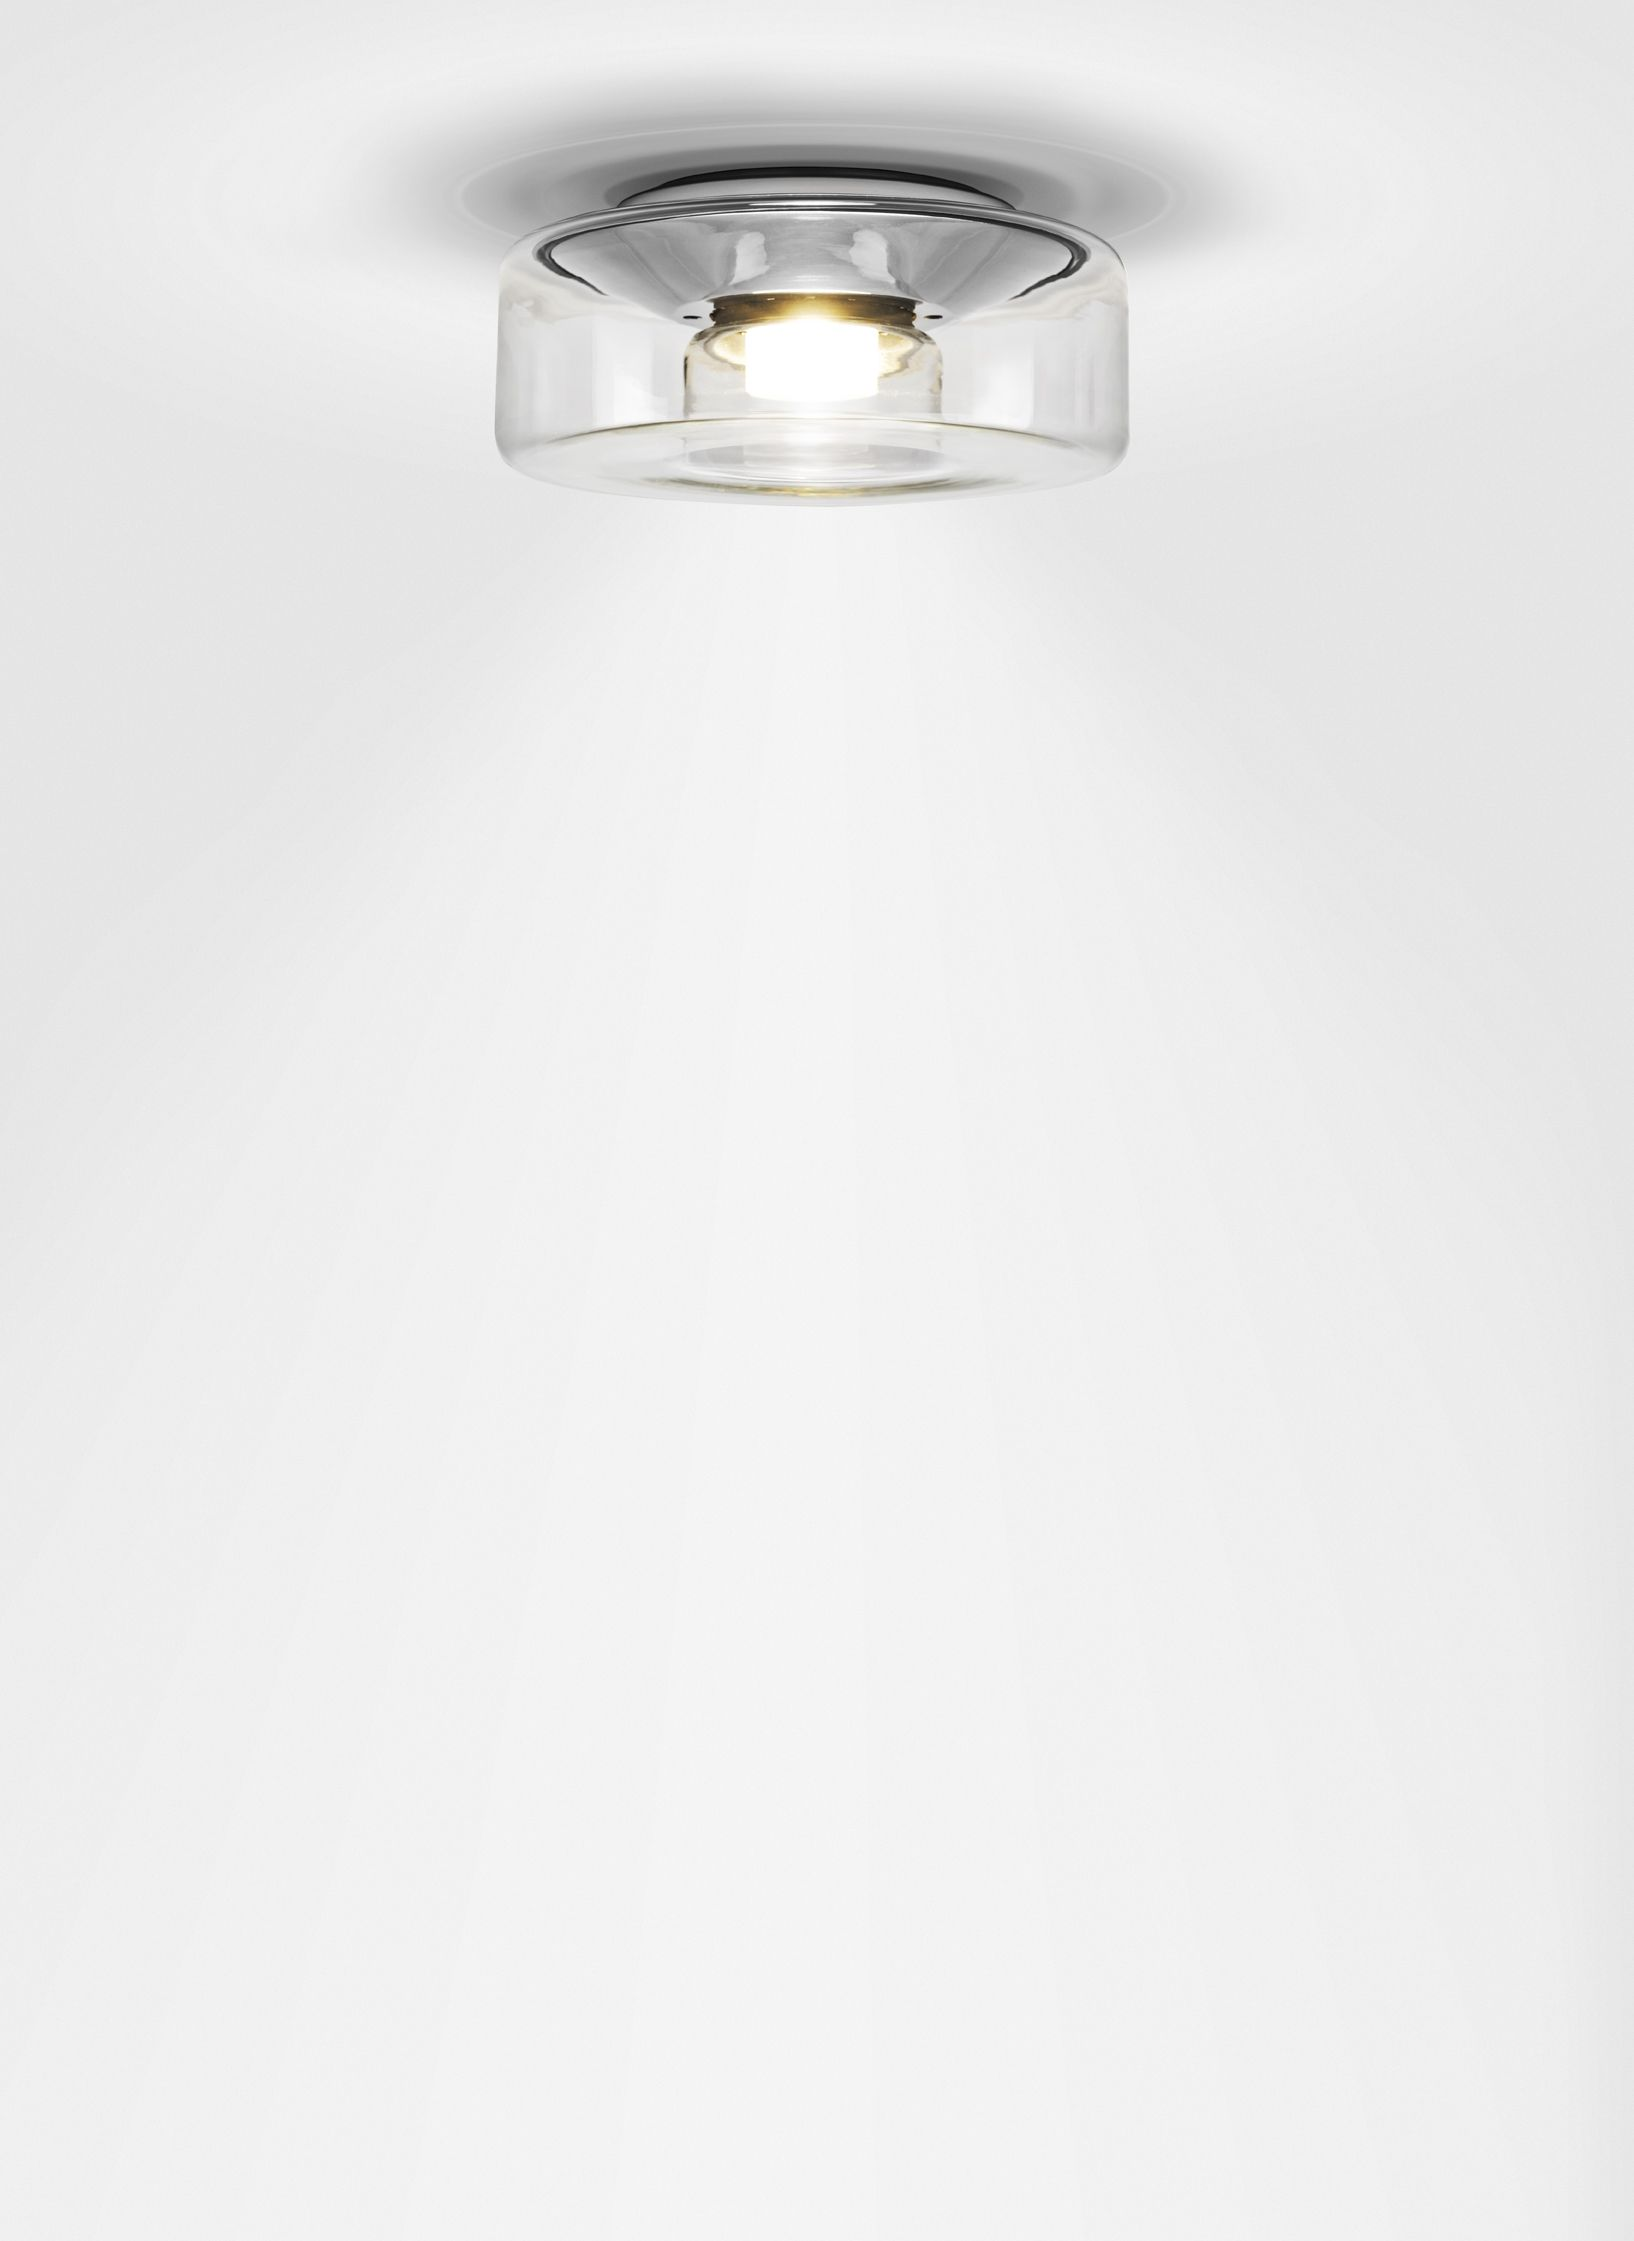 Serien Lighting Pin By Plan Inc On Light In 2019 Lighting Ceiling Lights